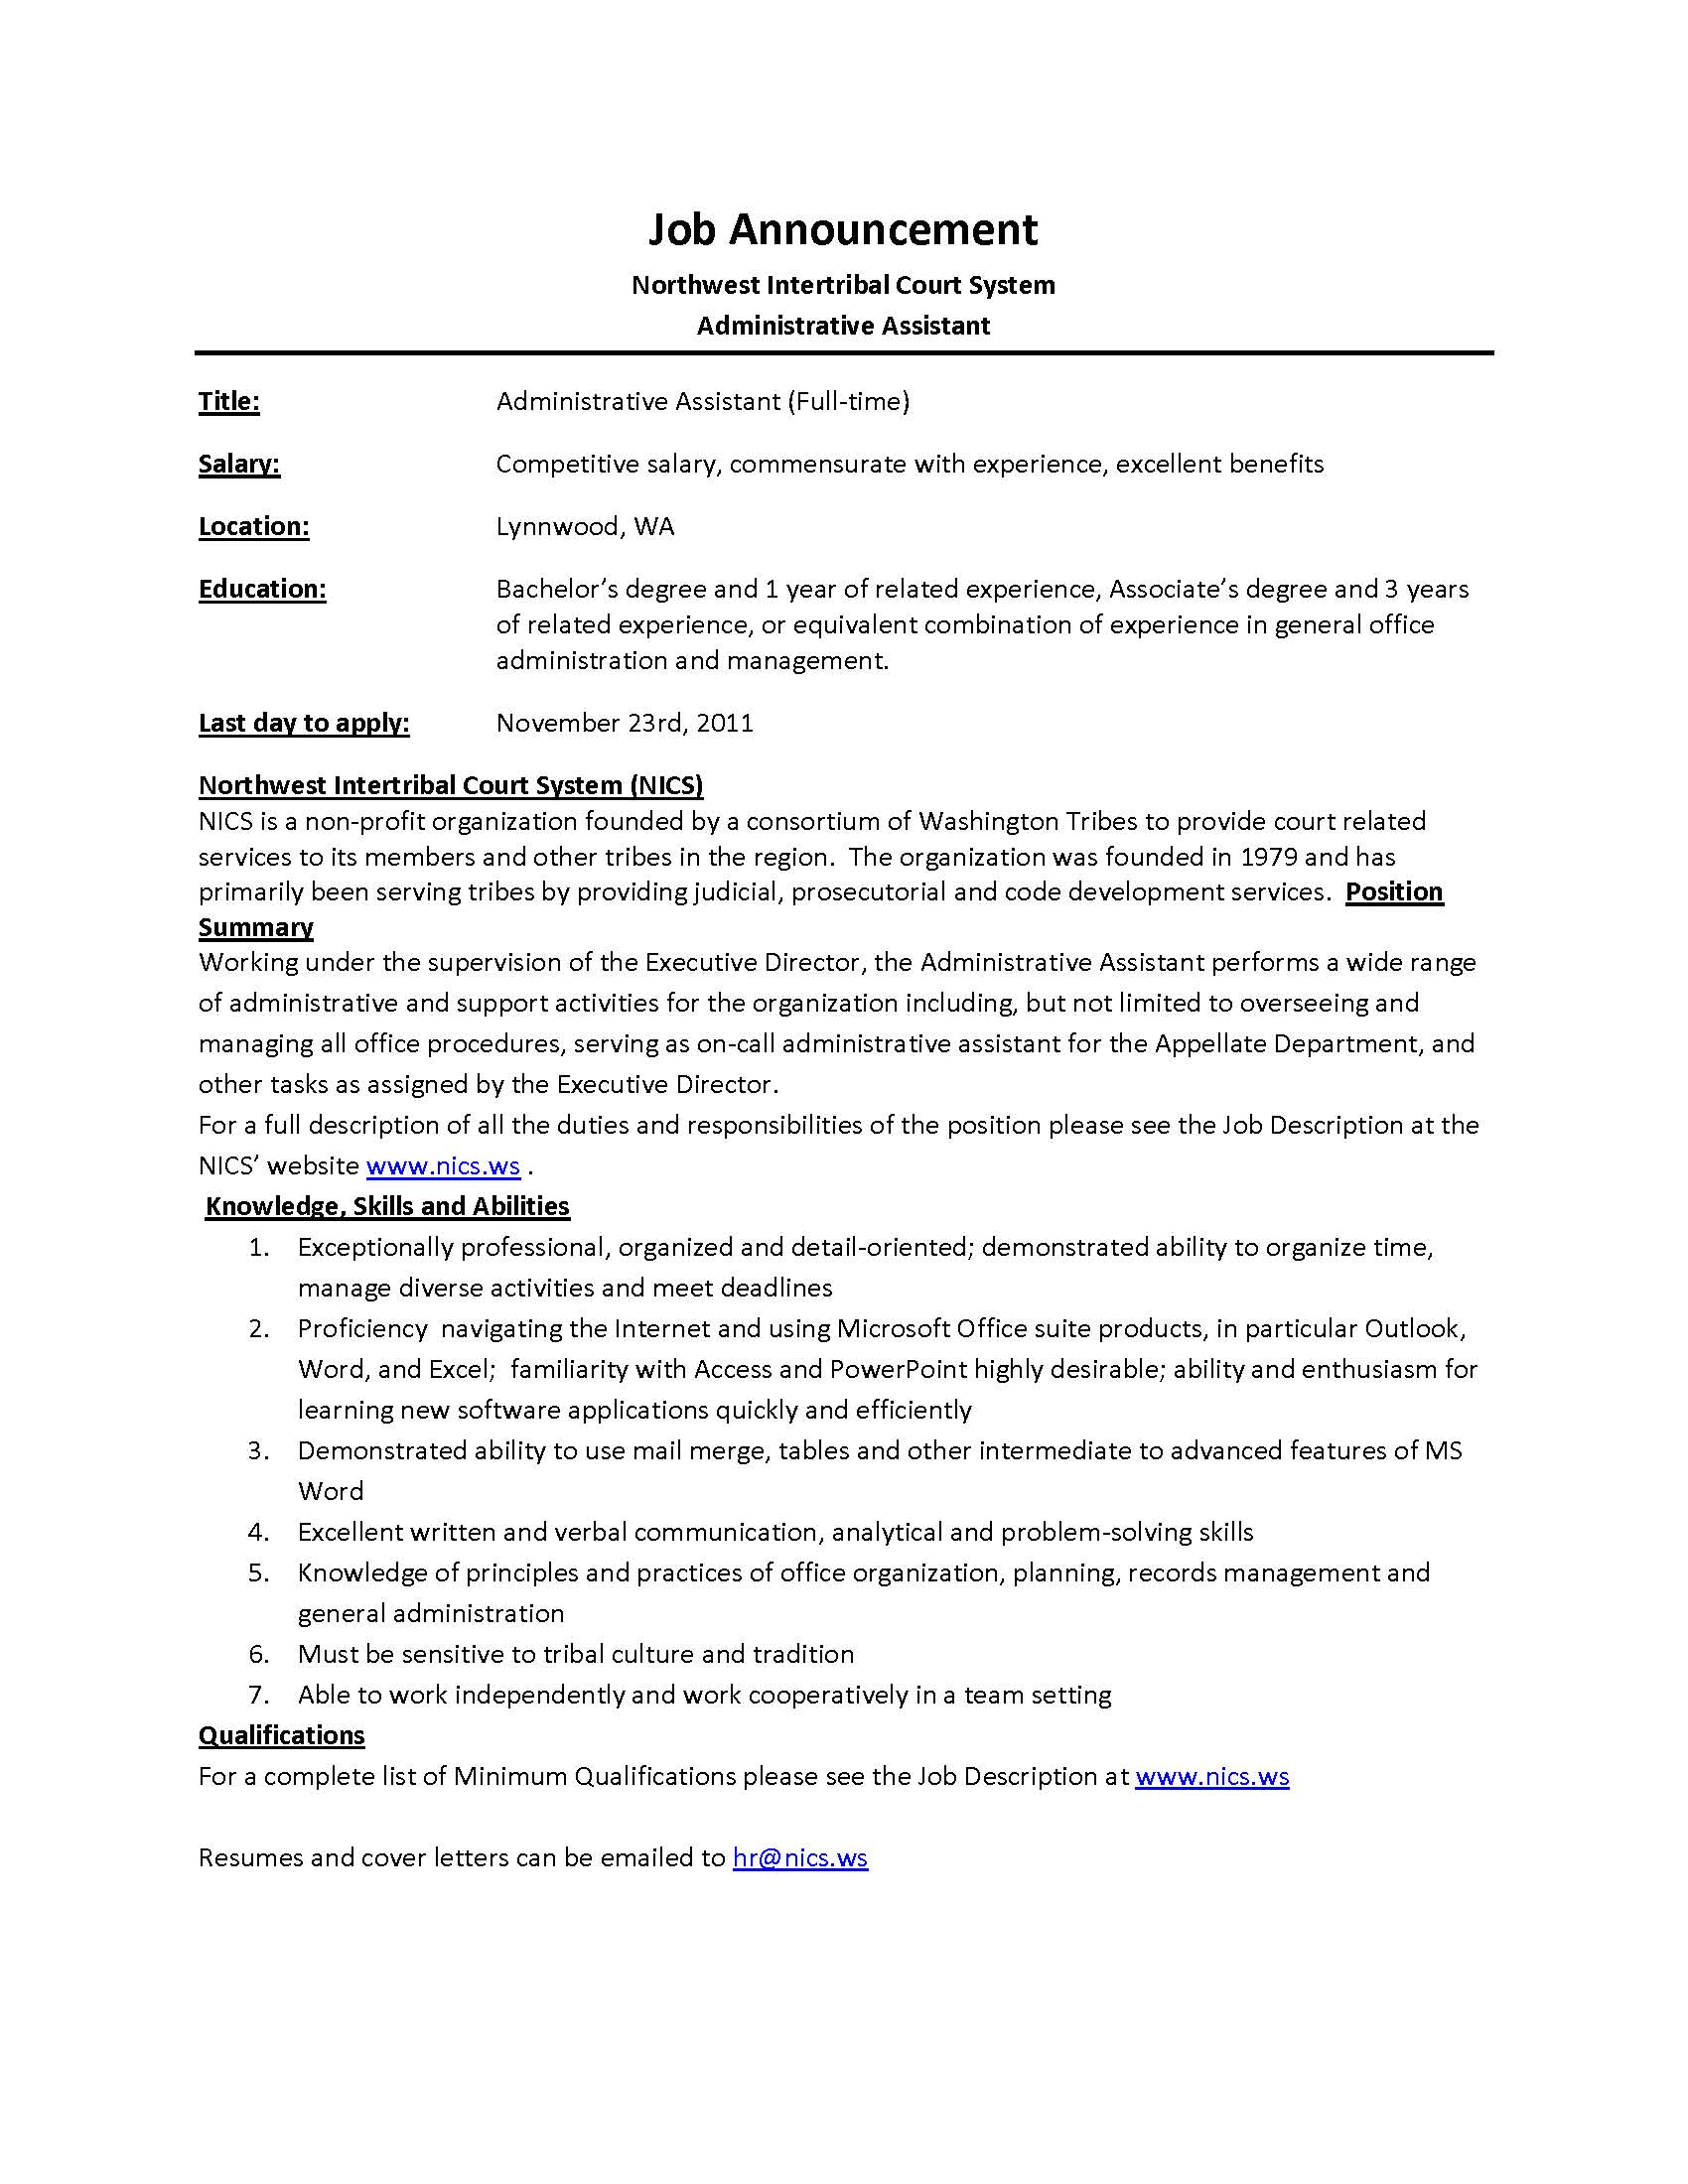 job announcement nics admin assistant administrative assistant